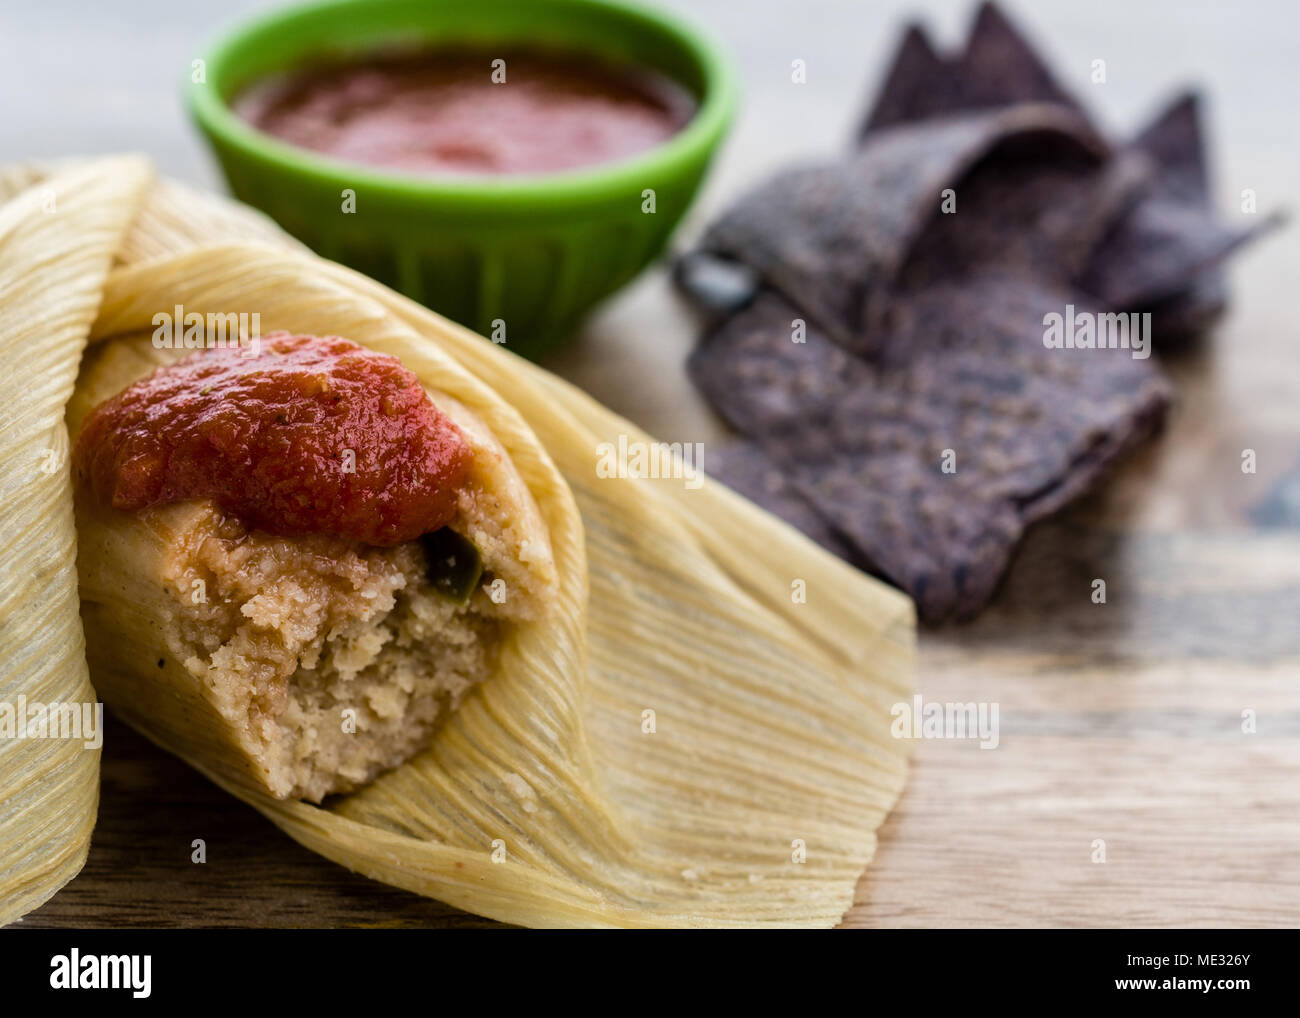 Partly unwrapped tamale served with blue corn tortillas and tomato sauce on wooden table side view - Mexican Food - Stock Image